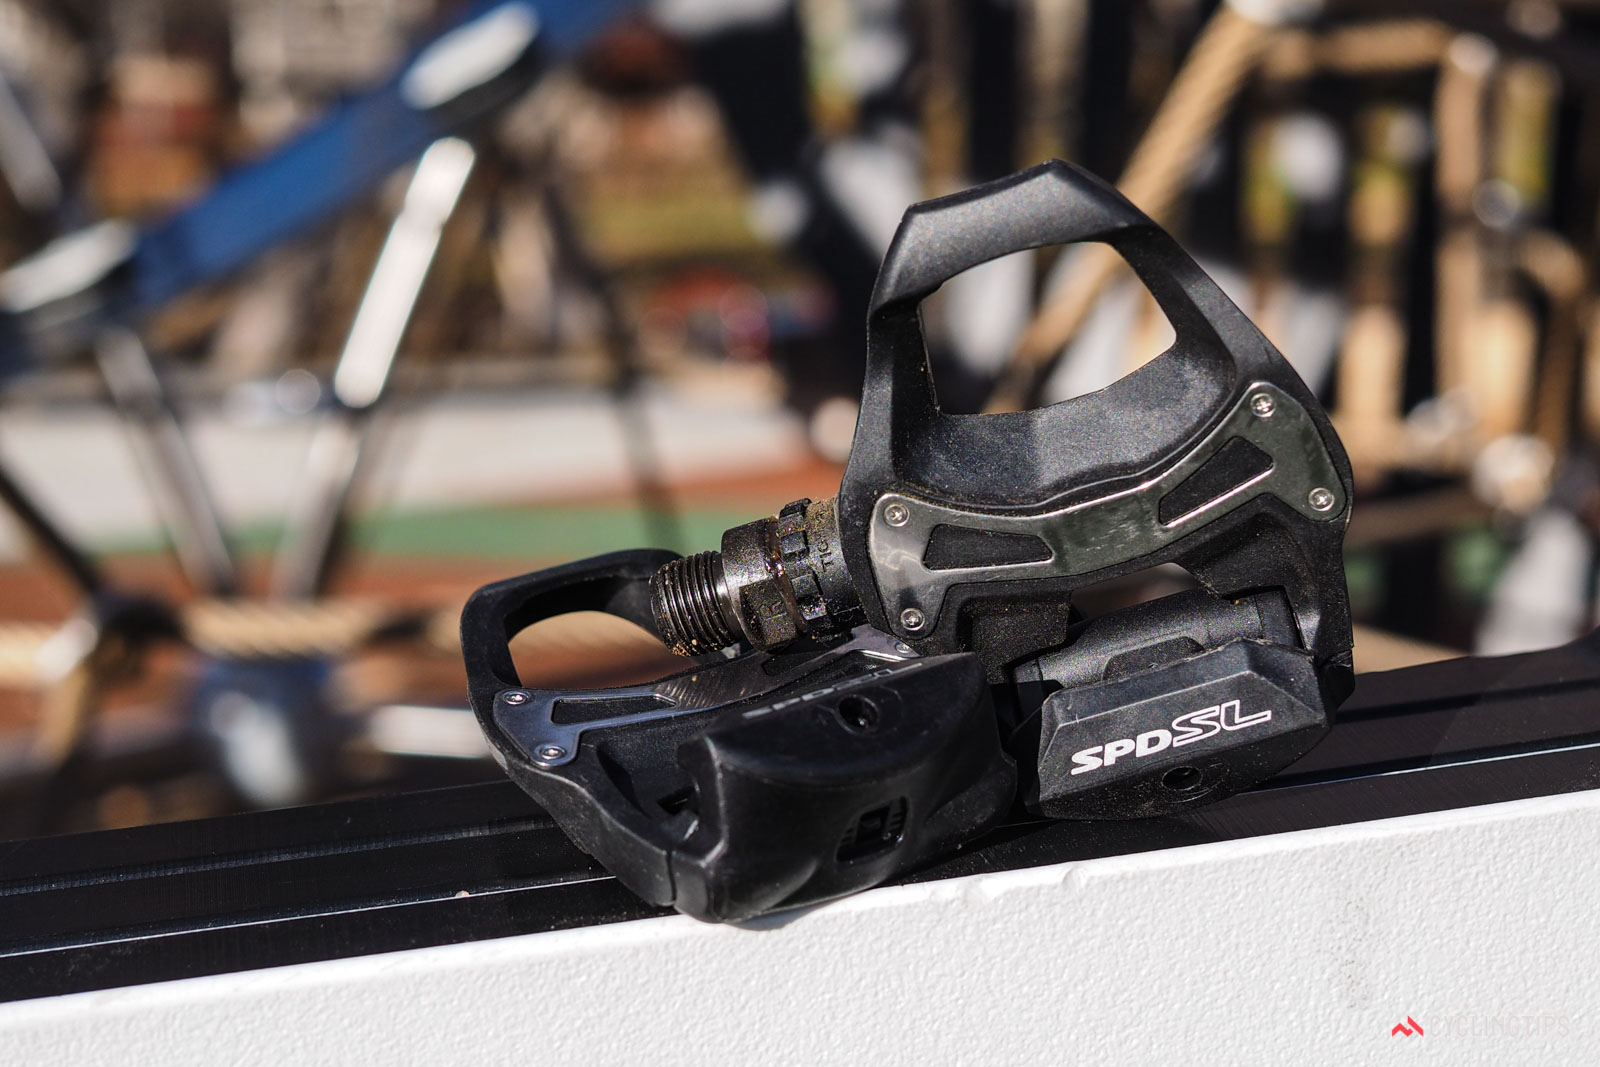 Shimano PD-R550 pedals